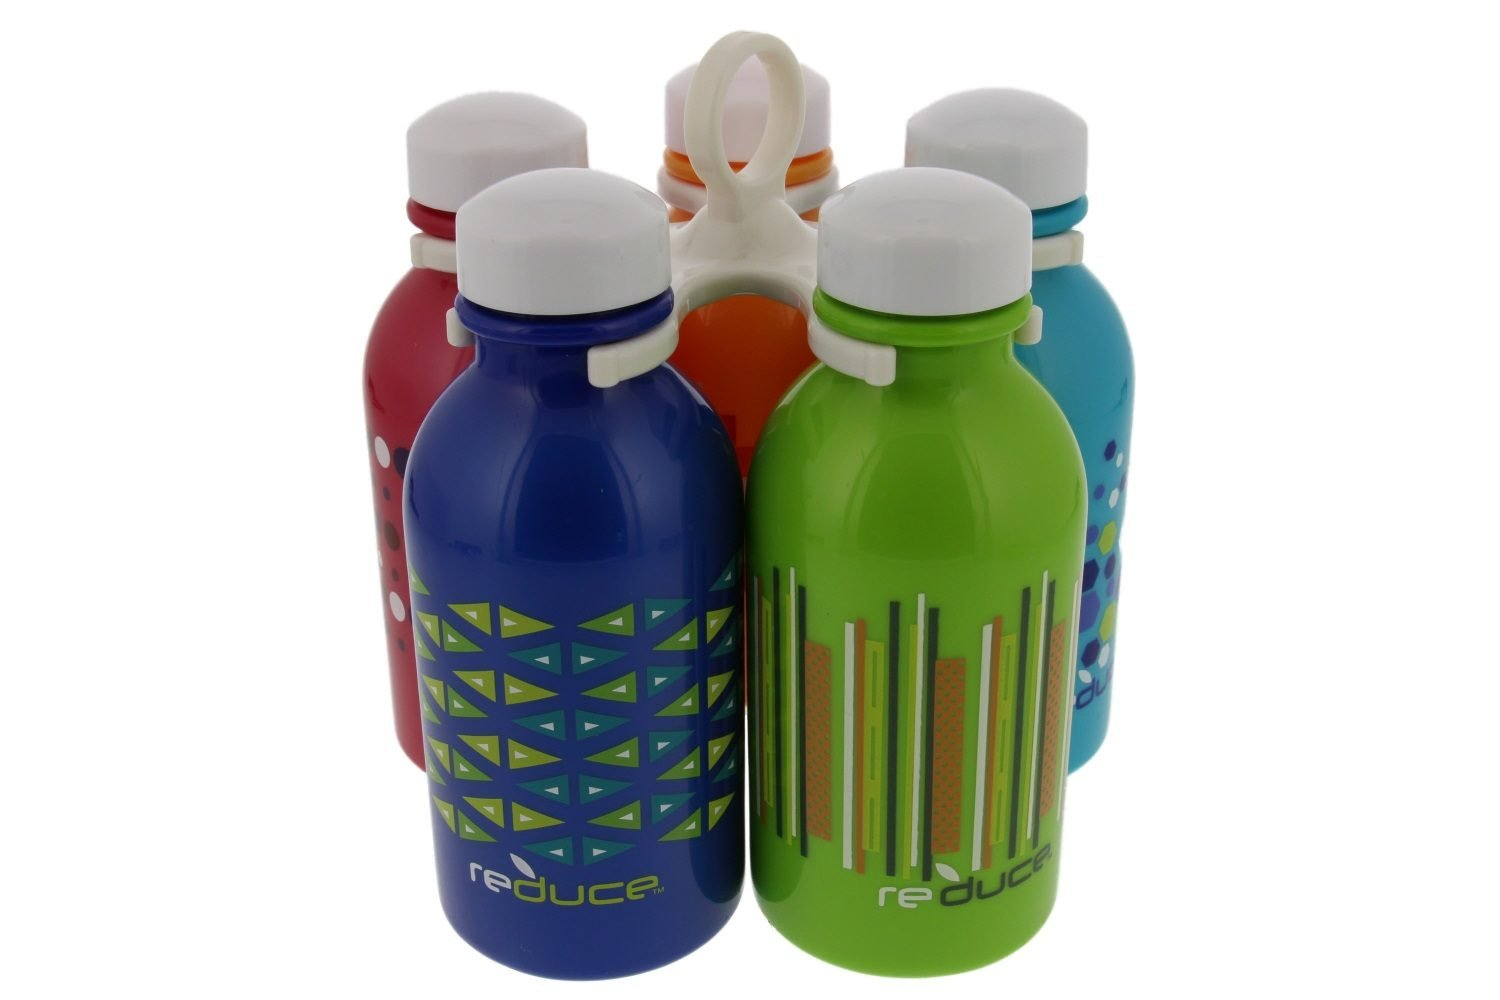 reduce WaterWeek Kids Reusable Water Bottle Set with Fridge Tray Organizer – 5 Pack, 10oz - BPA-free, Leak Proof Twist Off Cap – Assorted Colors - Perfect for Lunchboxes Base Brands 1015